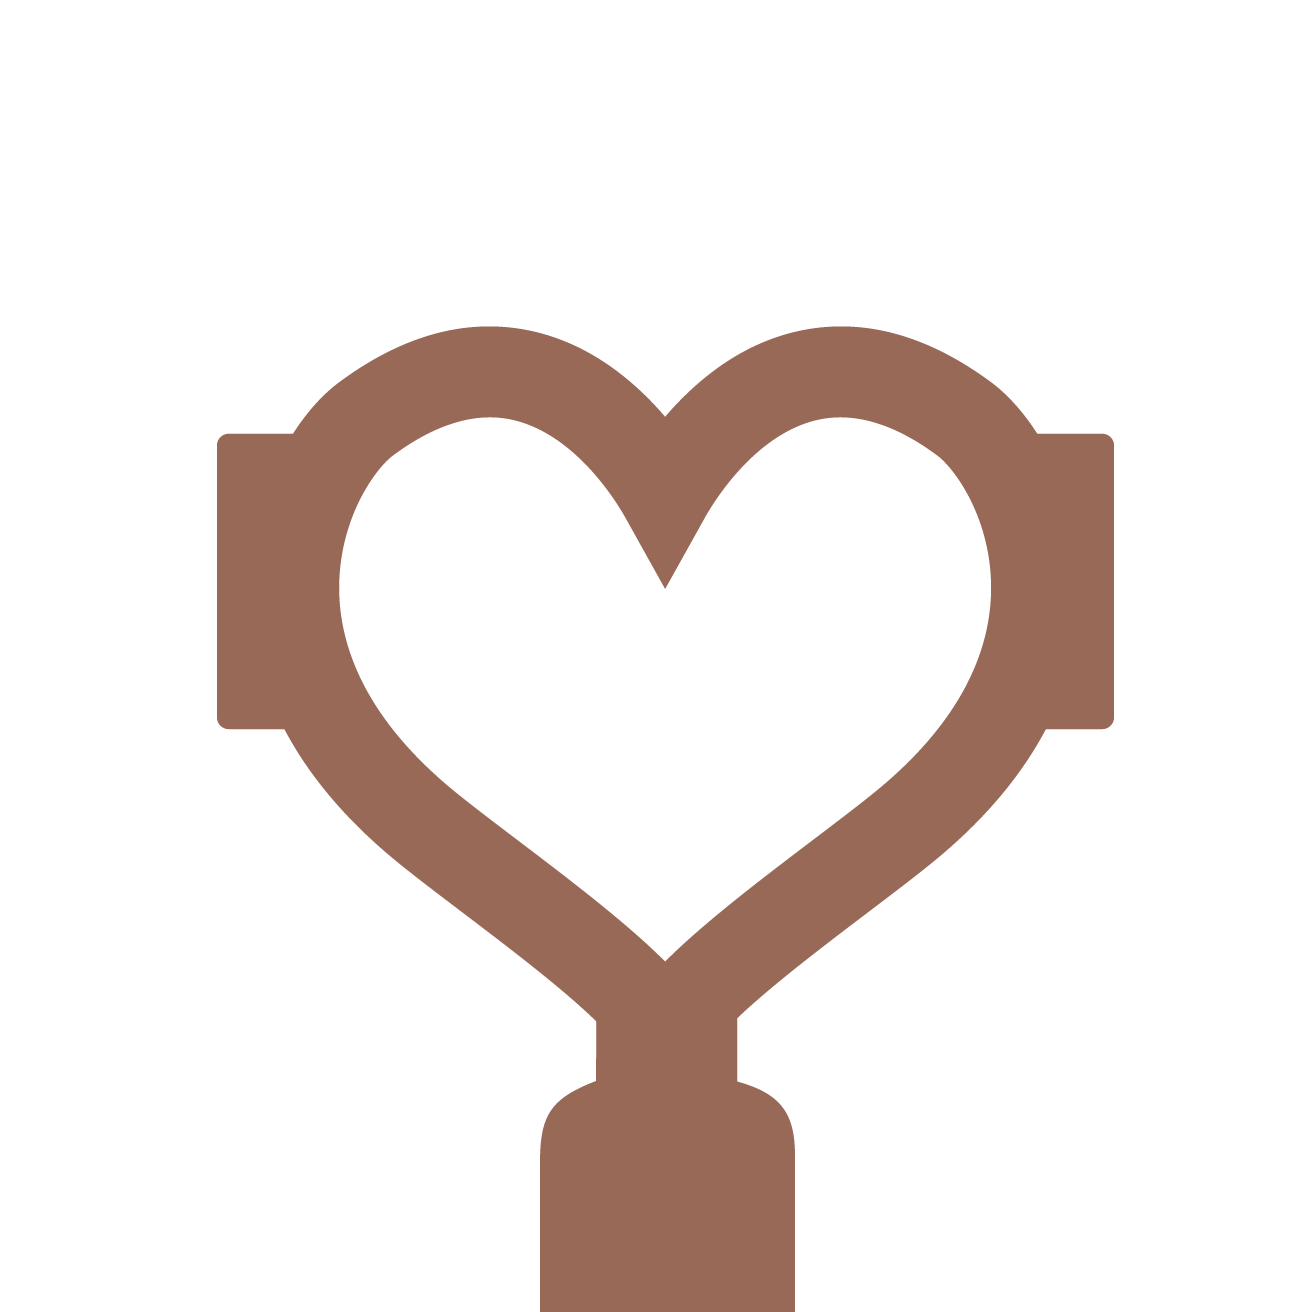 The Rocket Espresso R 60V Pressure Profile machine